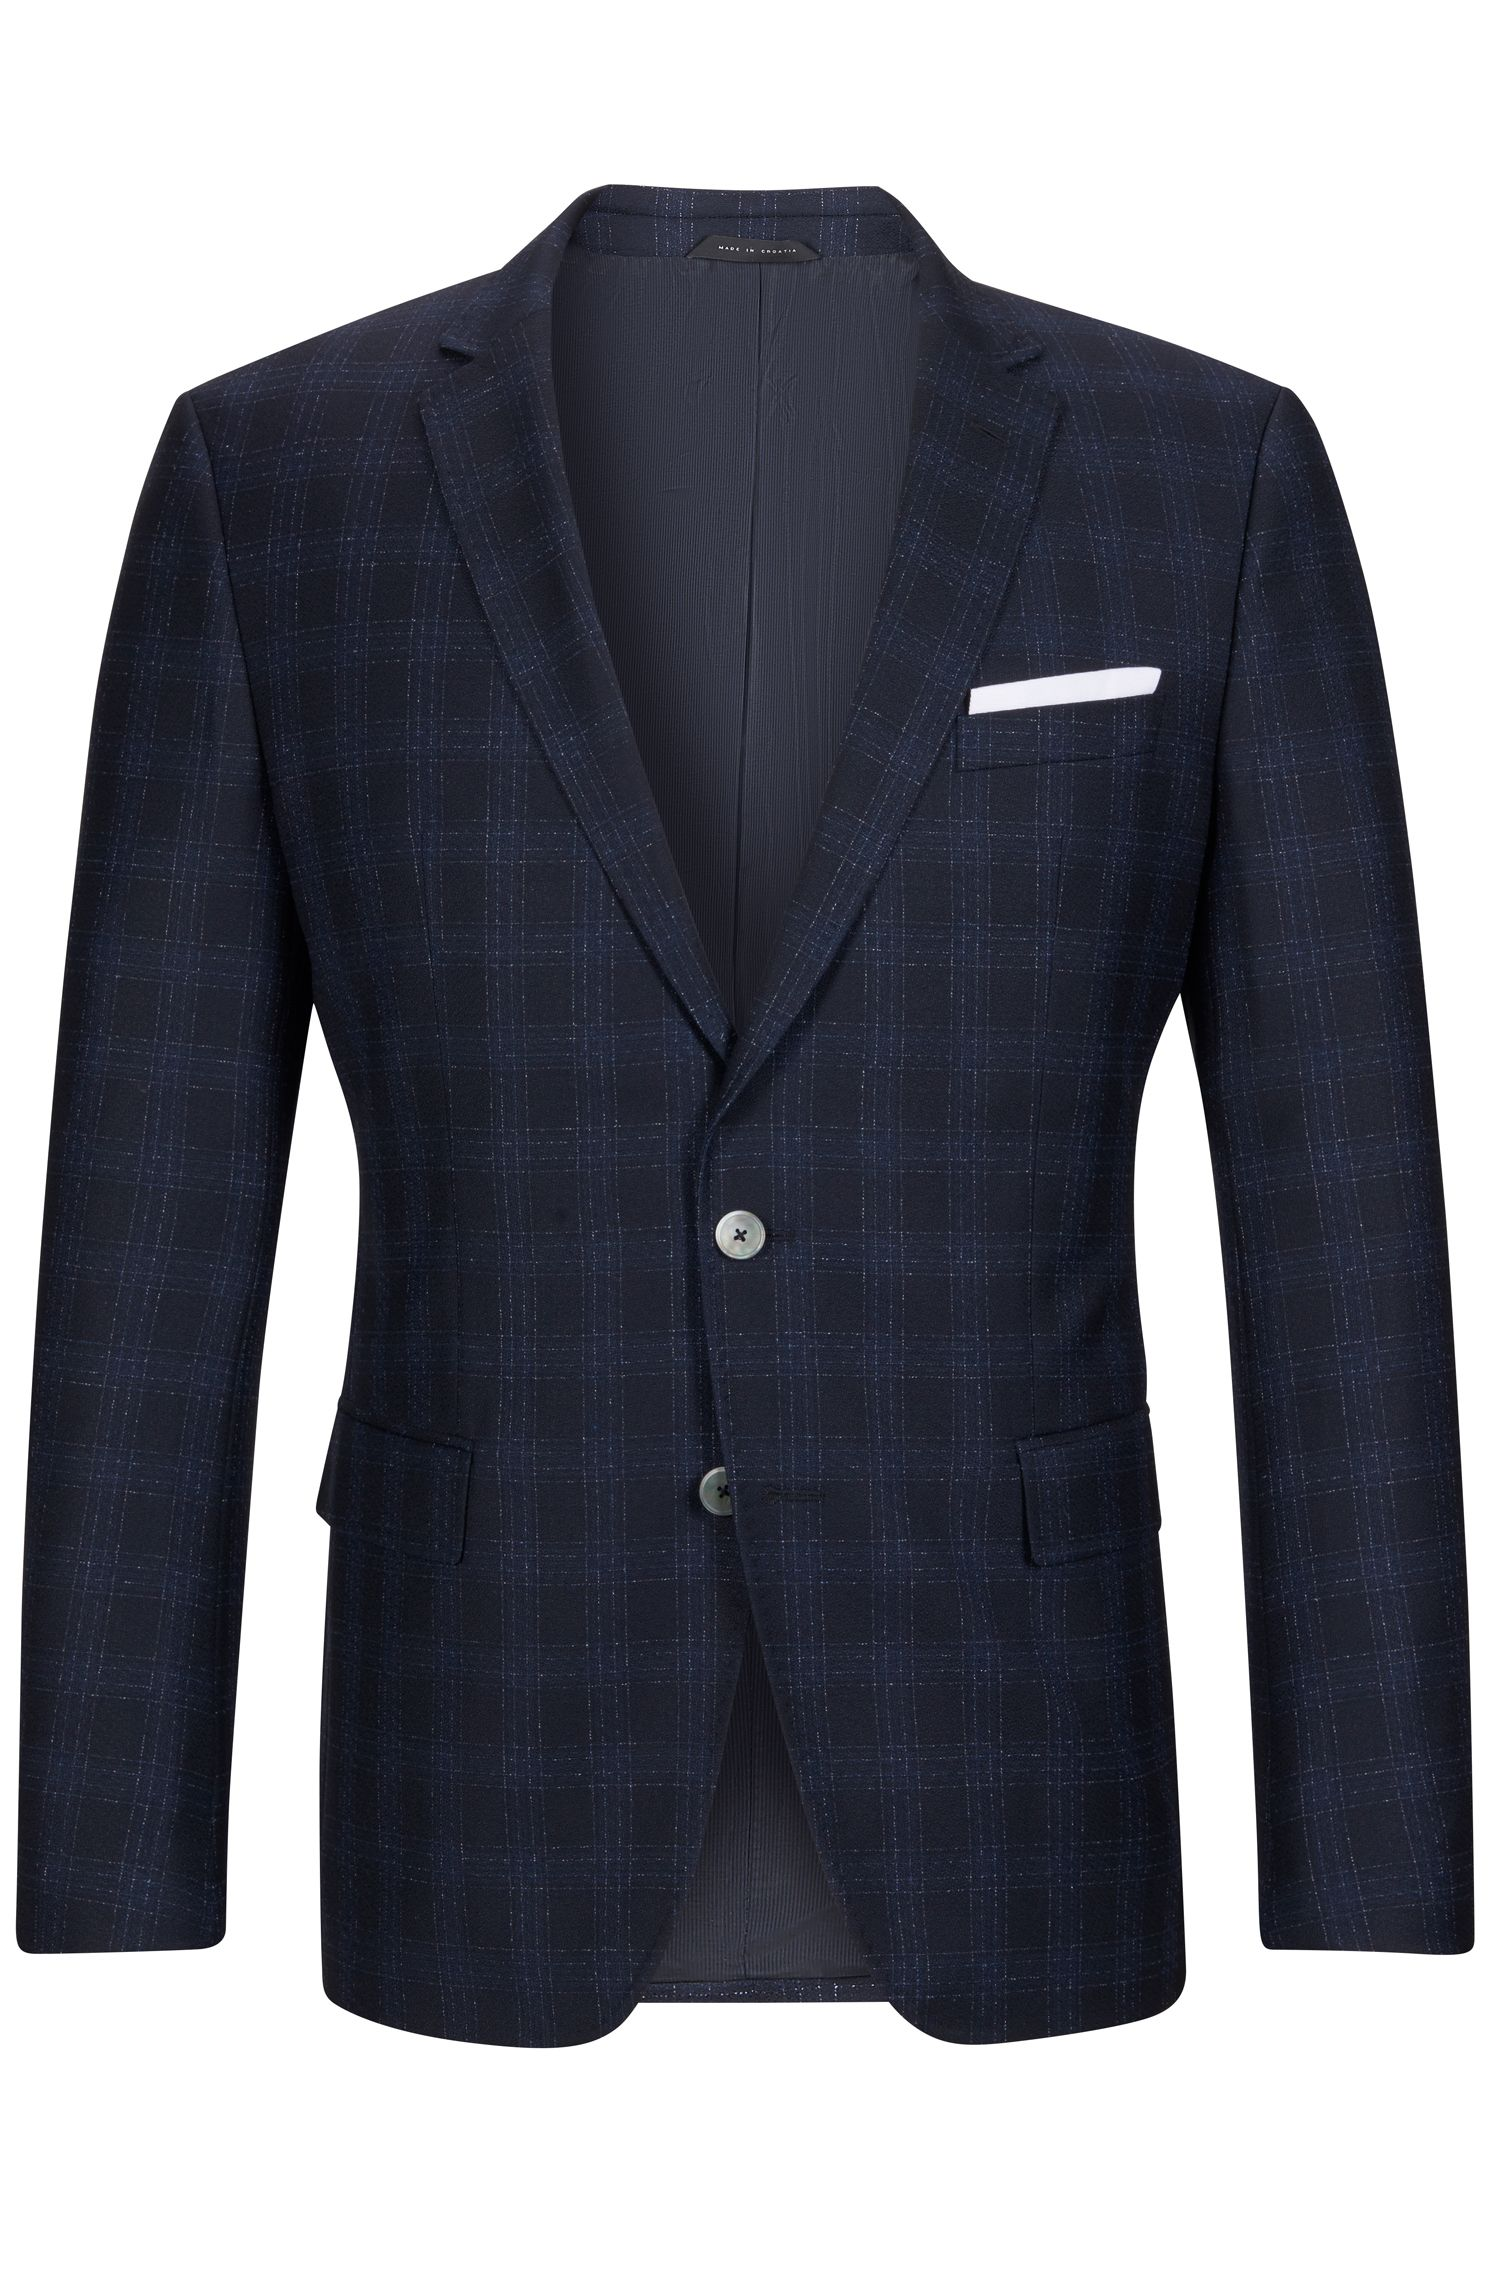 'Hutson' | Slim Fit, Windowpane Italian Virgin Wool Sport Coat